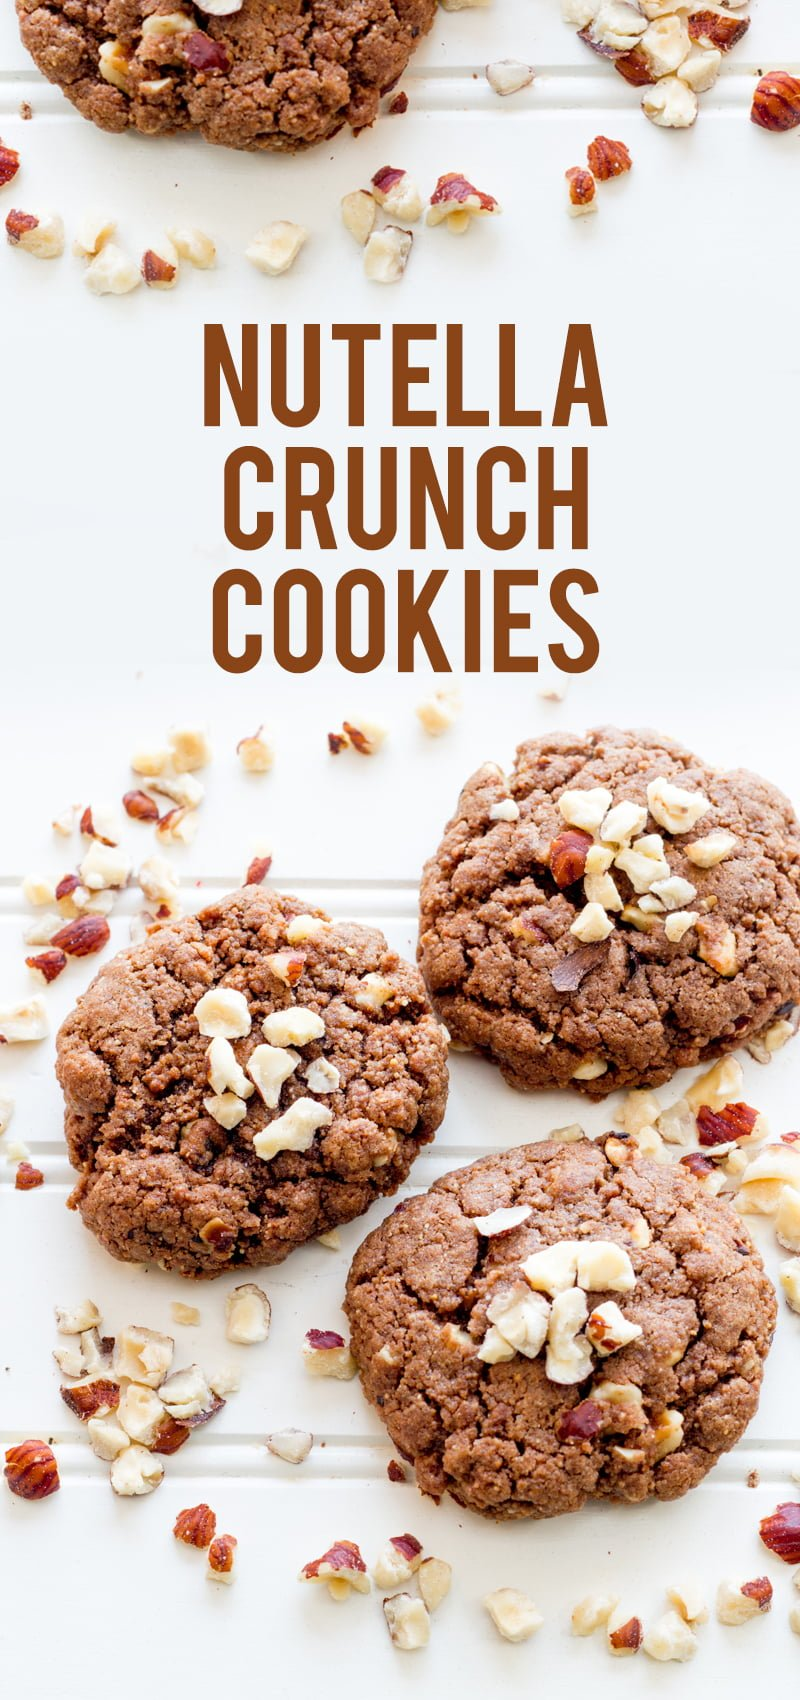 Nutella Crunch Cookies